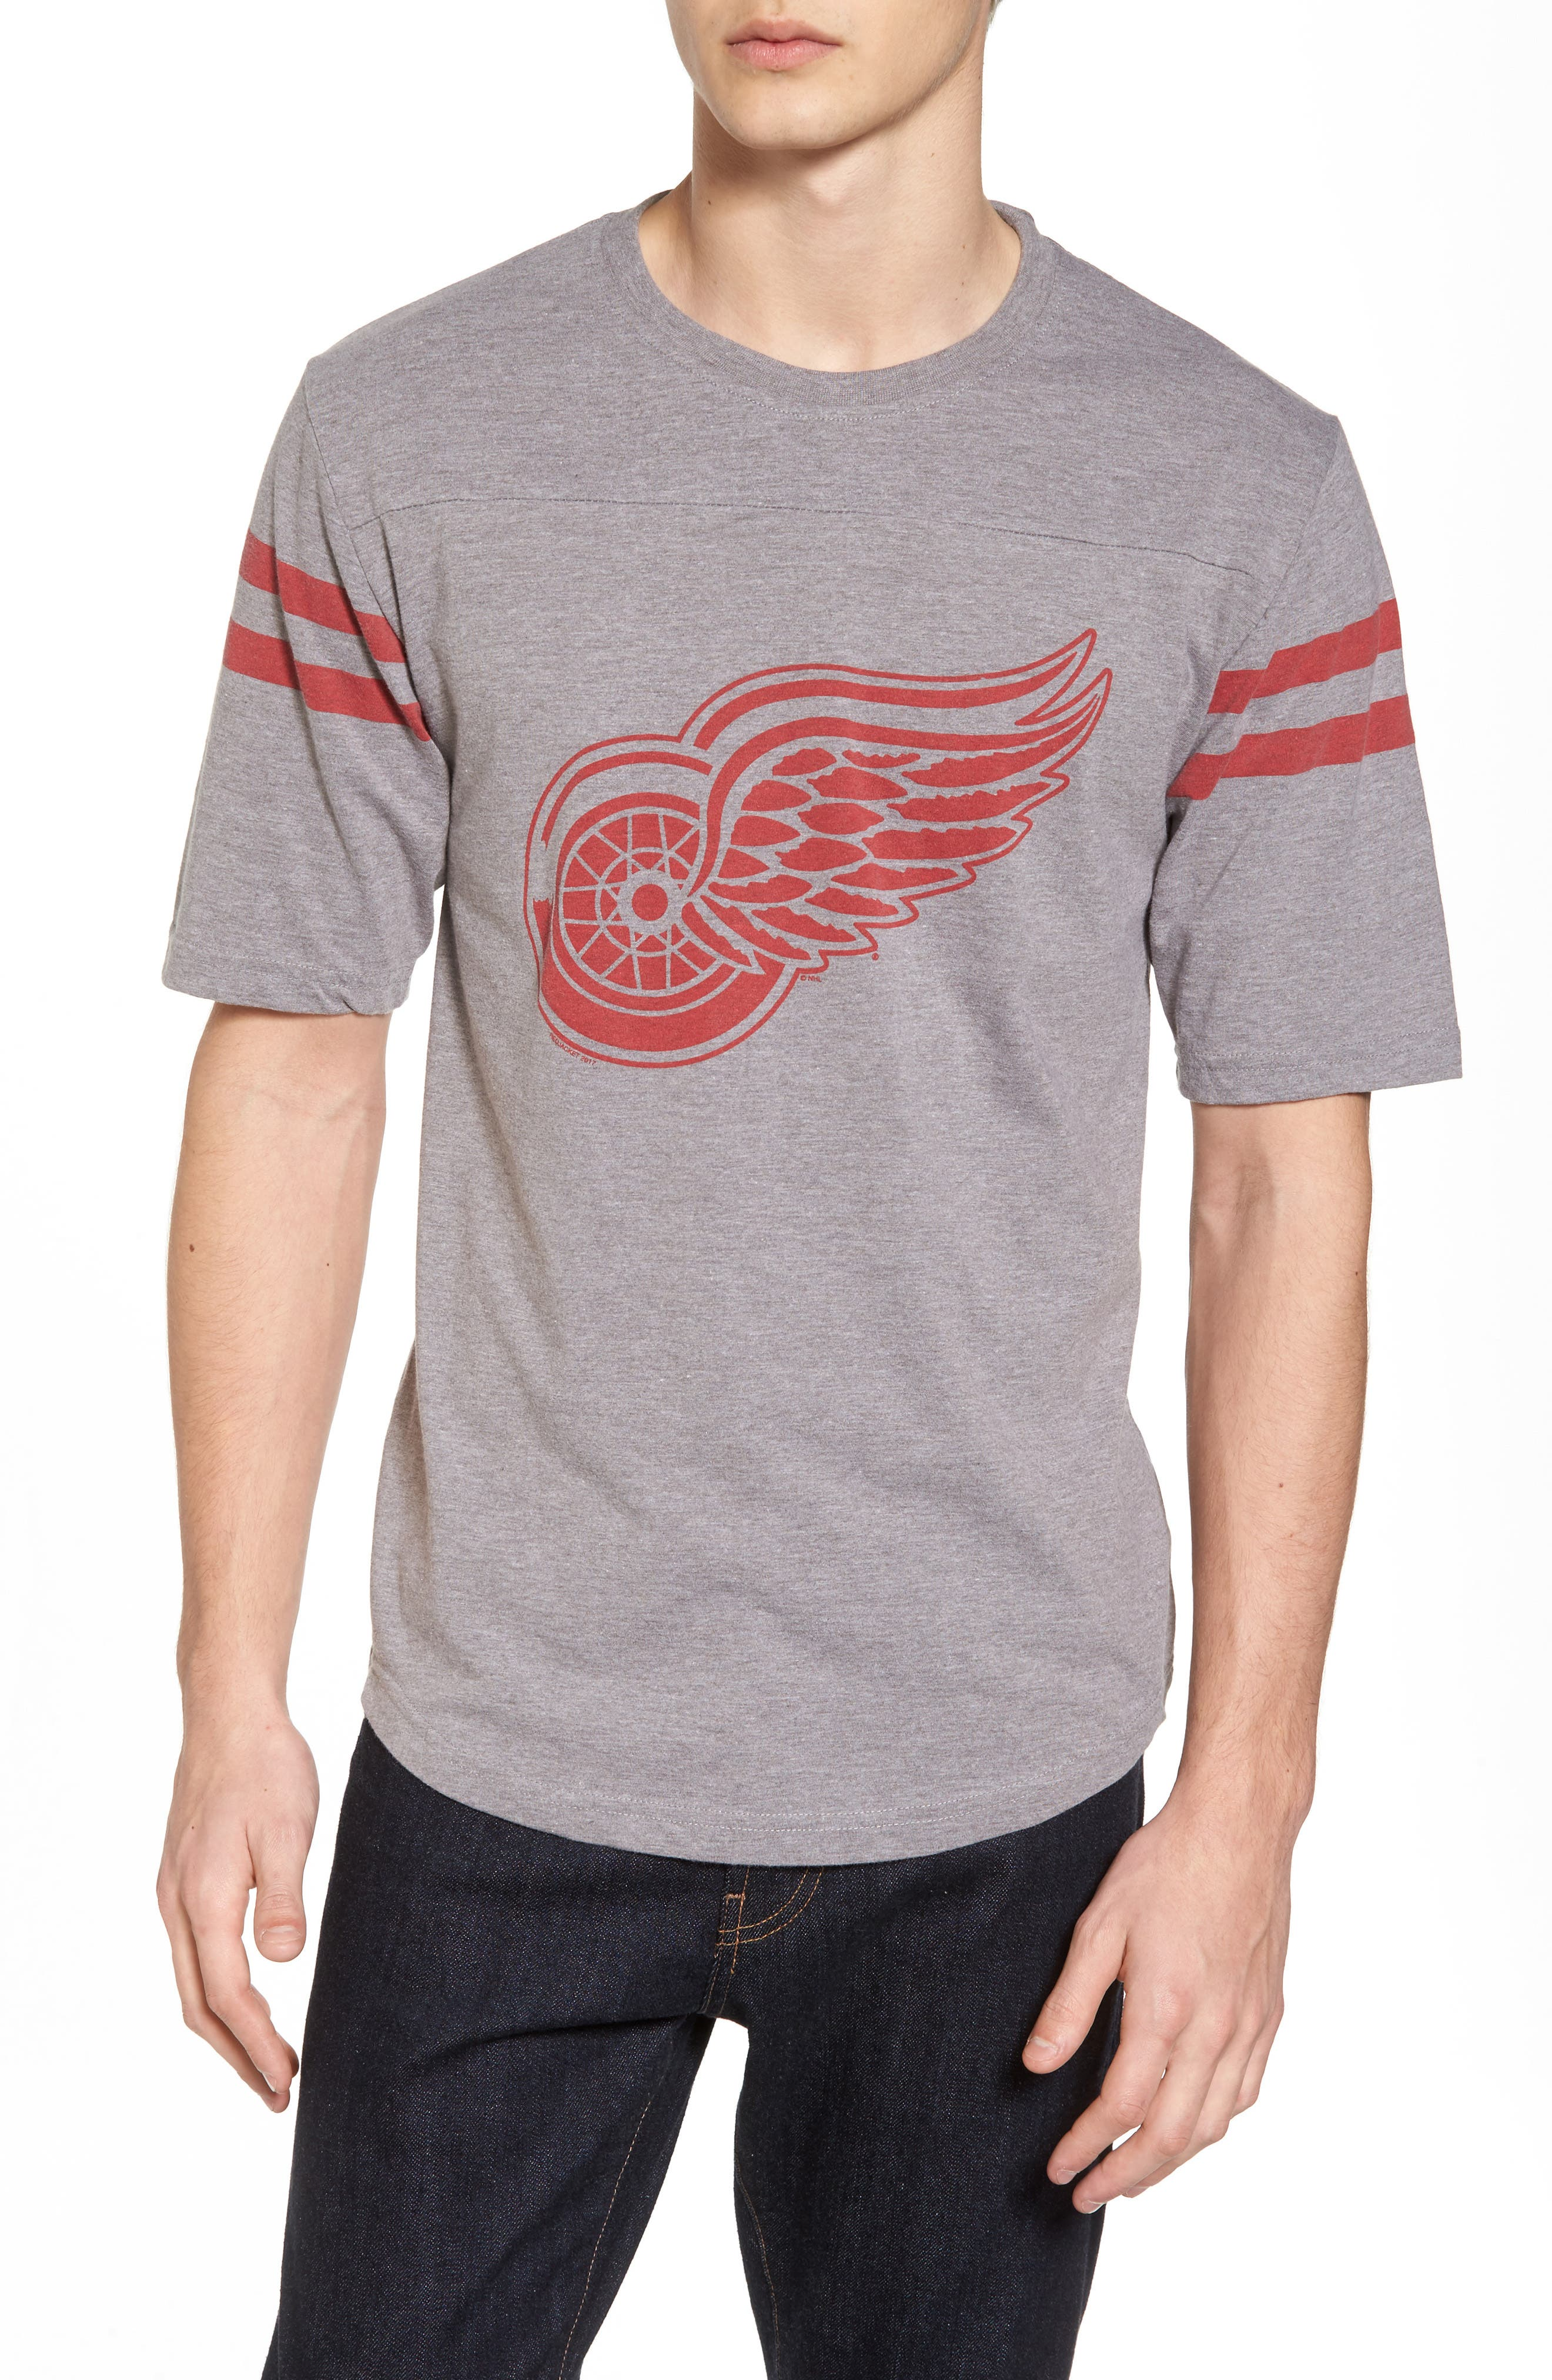 Crosby Detroit Red Wings T-Shirt,                         Main,                         color,